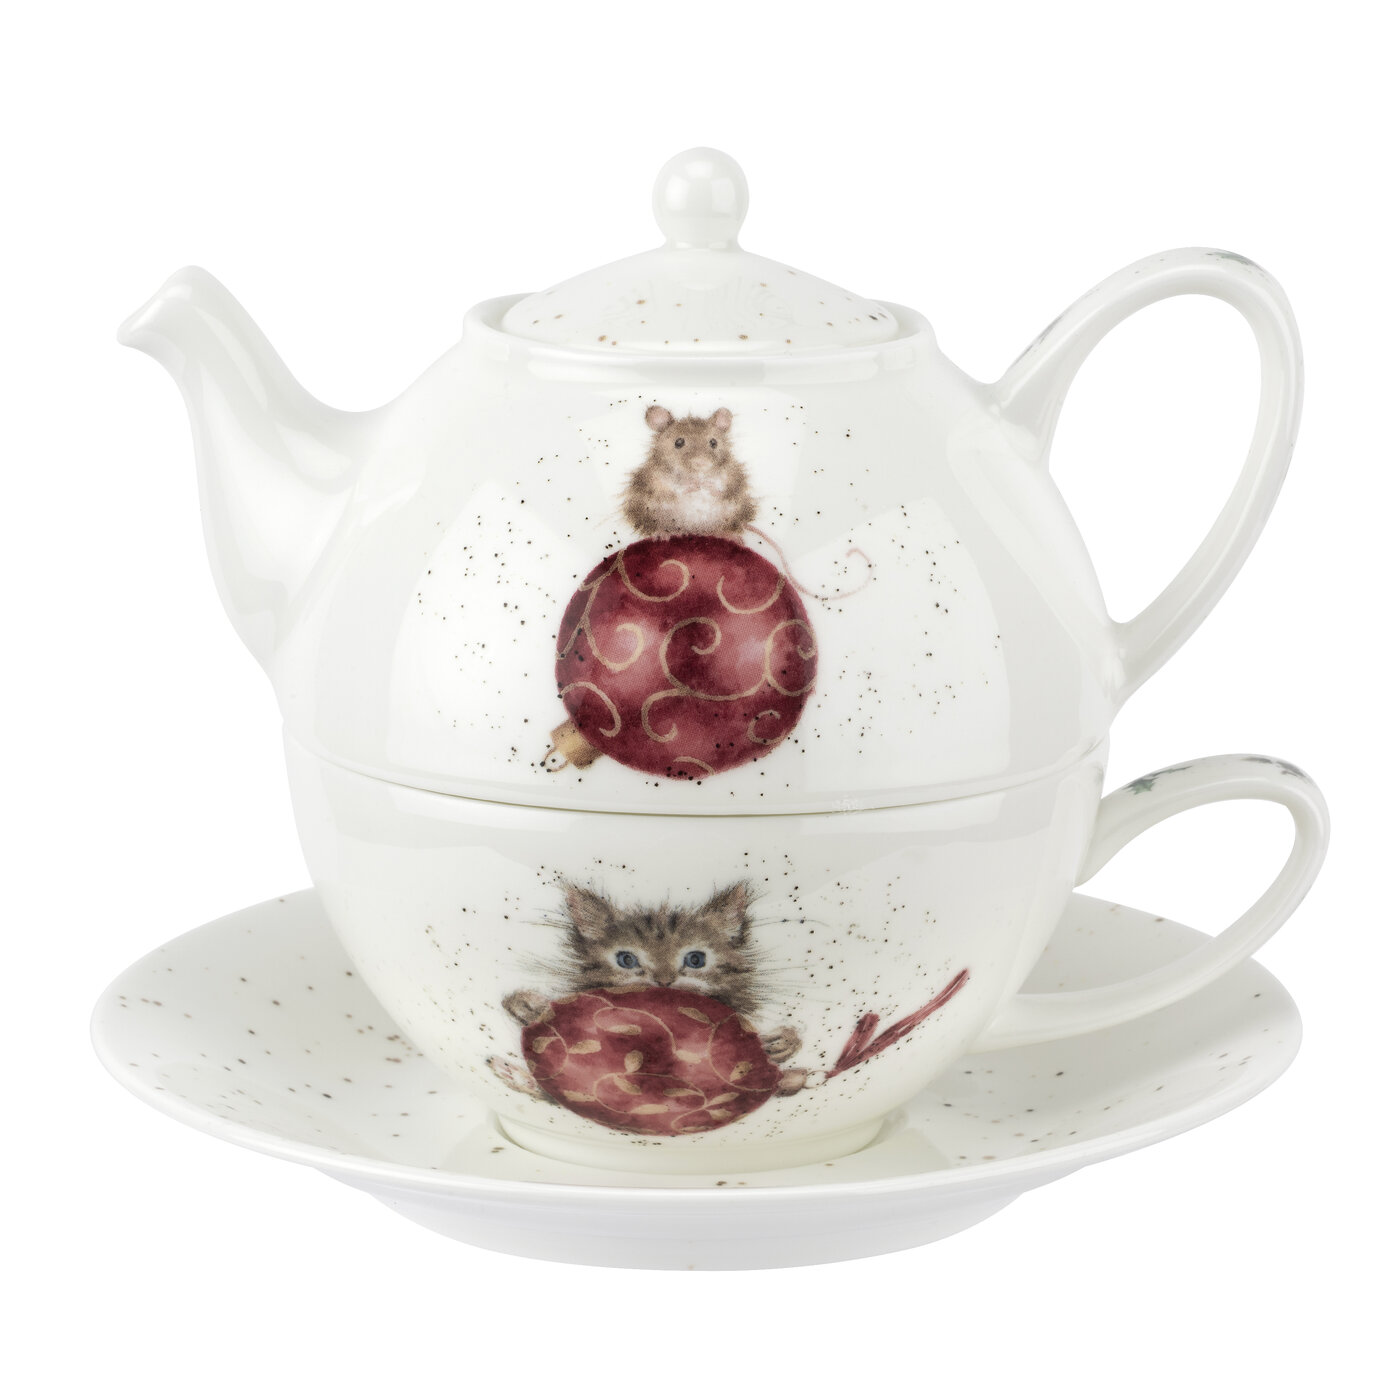 Royal Worcester Wrendale Designs Tea For One with Saucer (Kitten & Mouse) image number 0